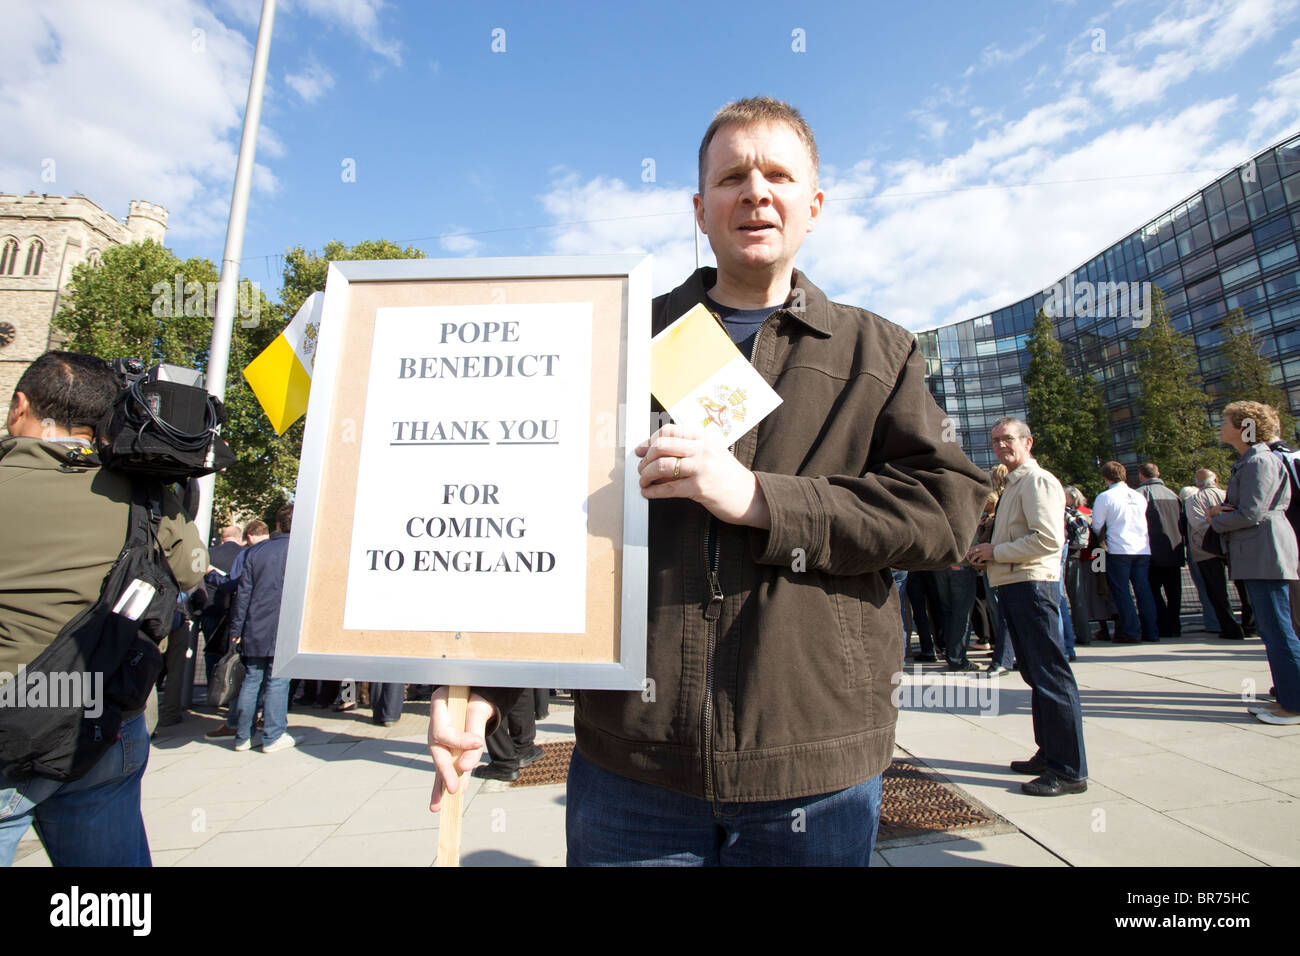 Supporters line the route for visit to London of Pope Benedict XVI - Stock Image